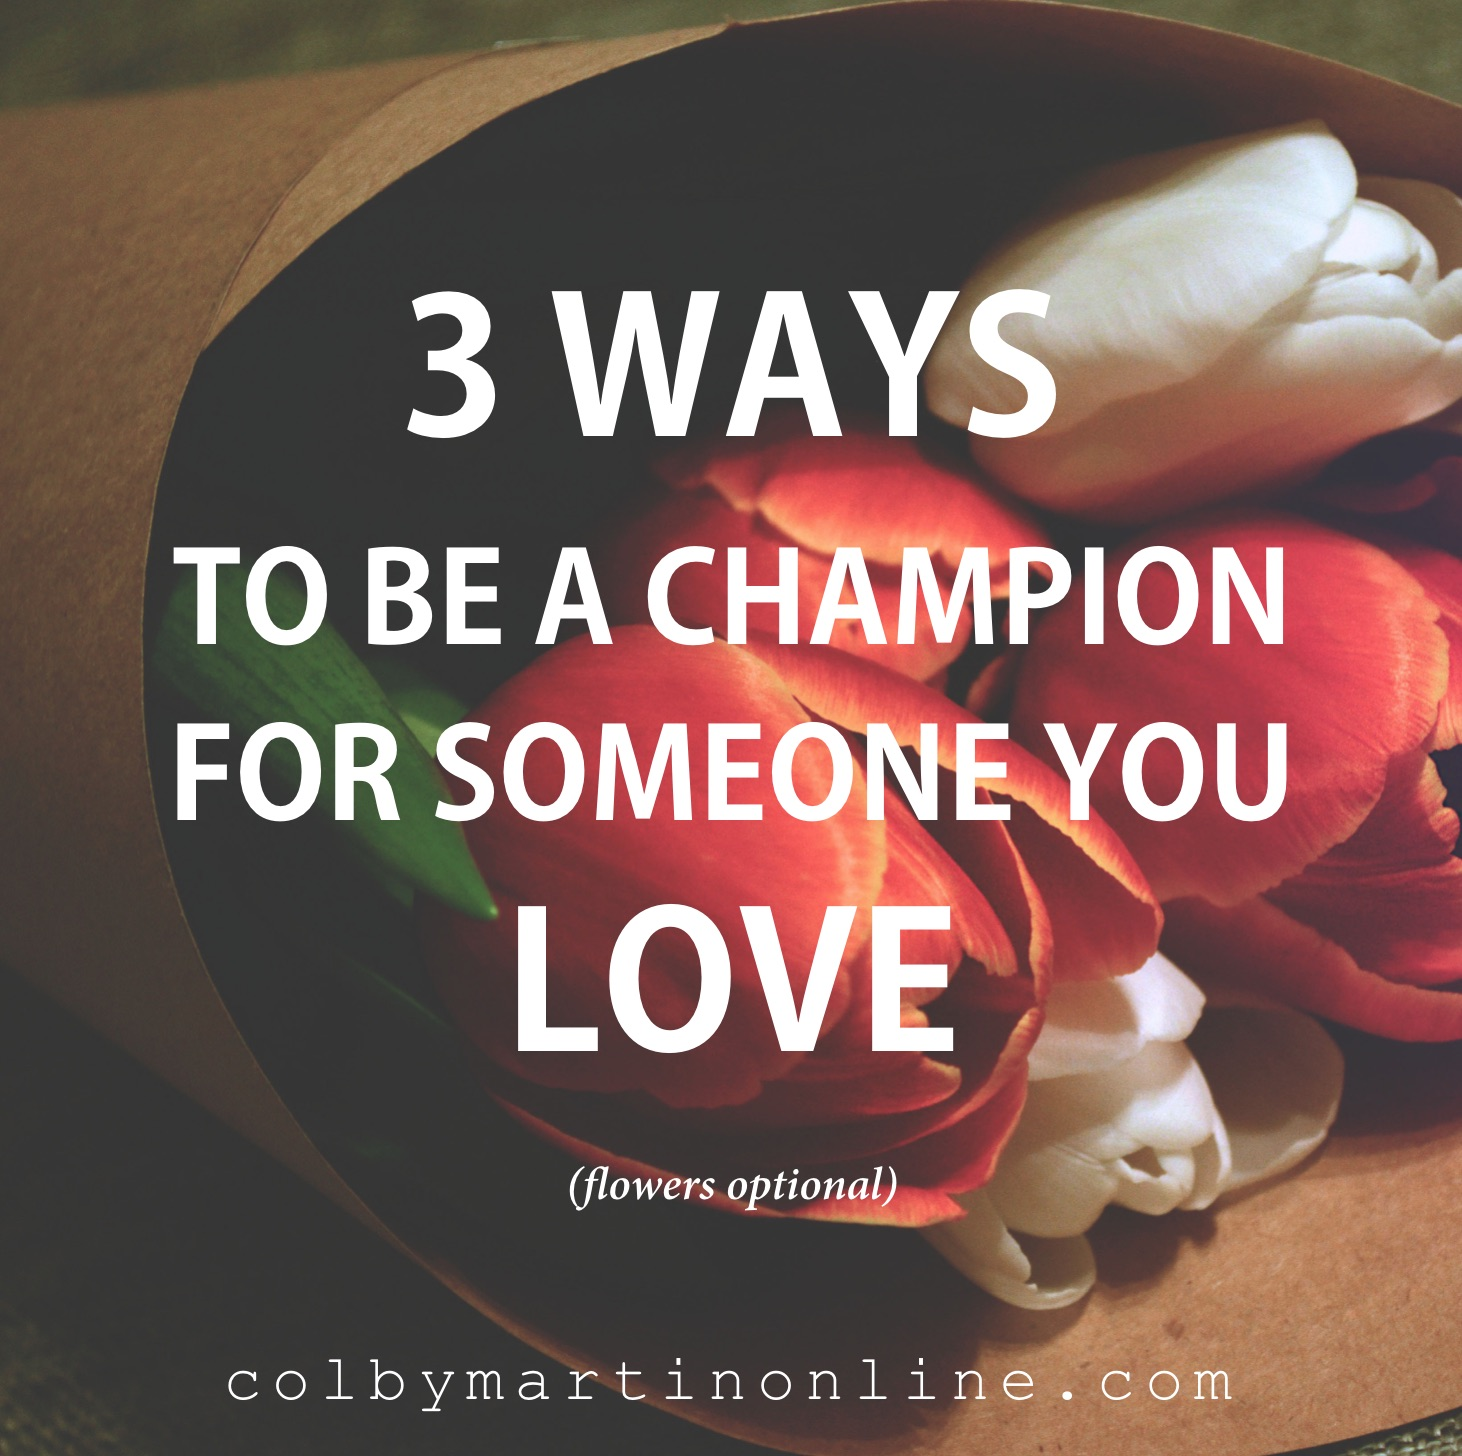 champion your loved one relationships connection wholeness